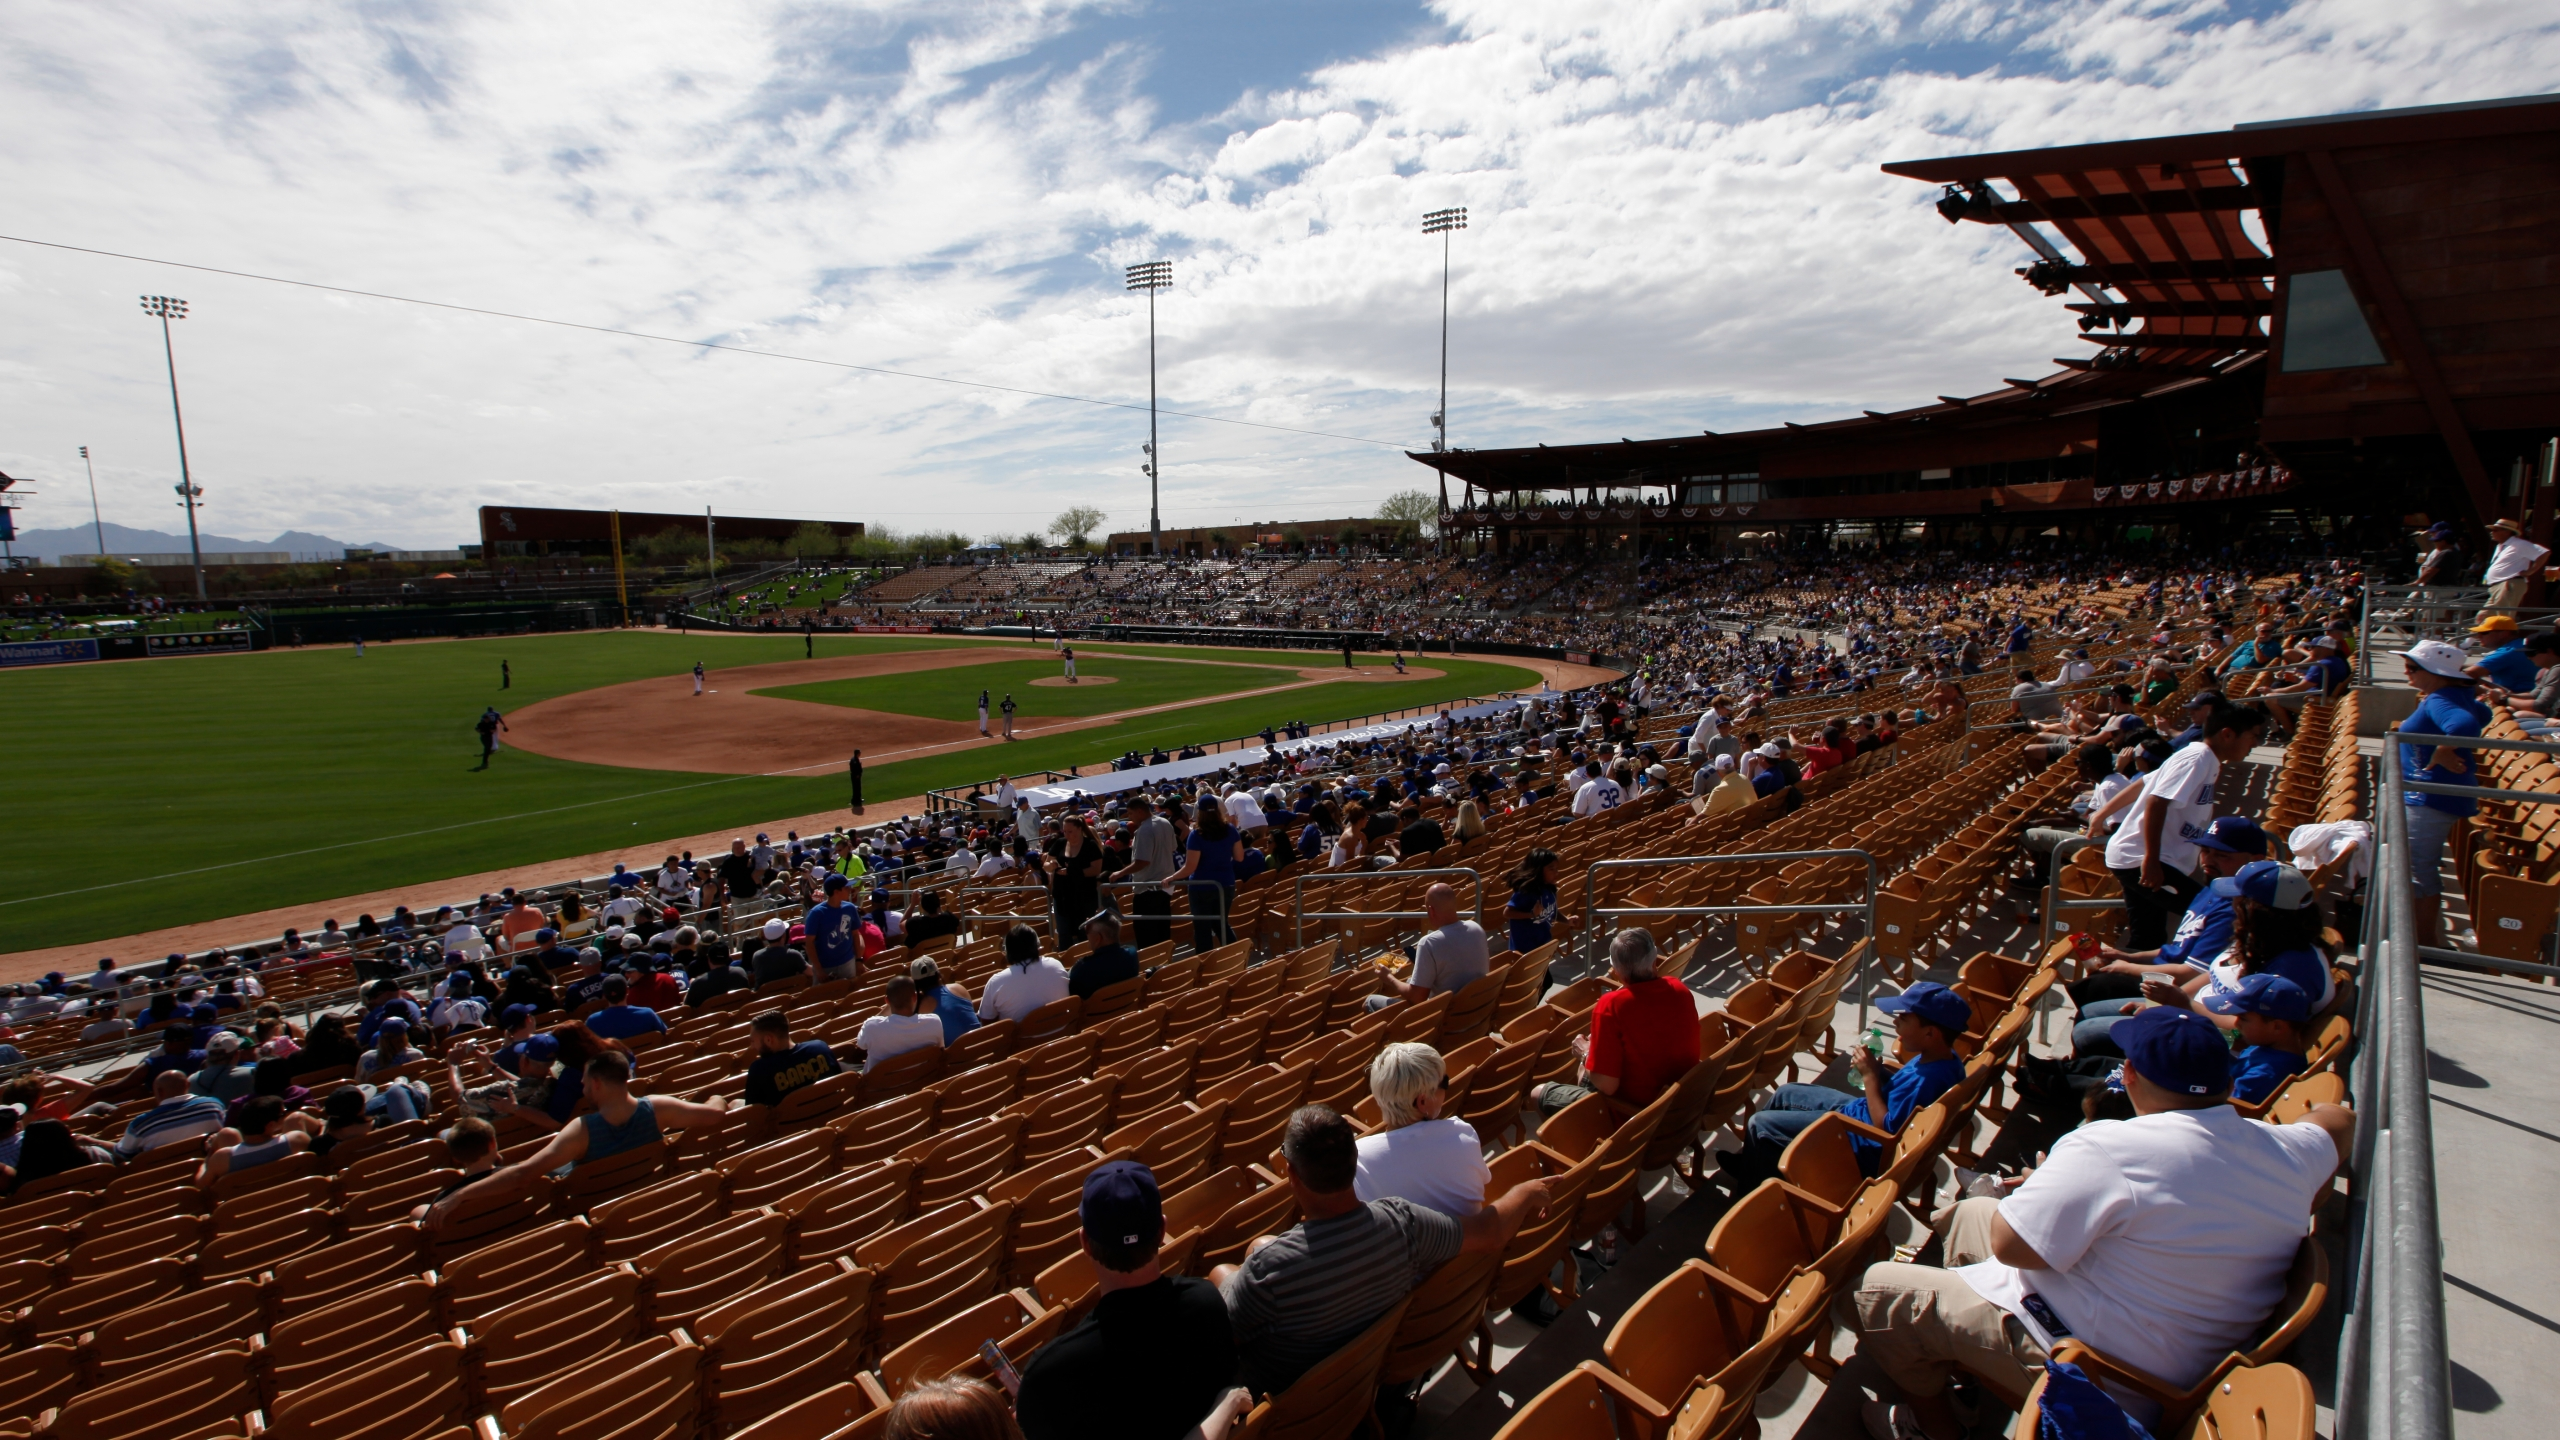 Fans watch an exhibition baseball game at Camelback Ranch between the Los Angeles Dodgers and Chicago White Sox in Glendale, Ariz. on Feb. 28, 2014. (Paul Sancya/Associated Press)